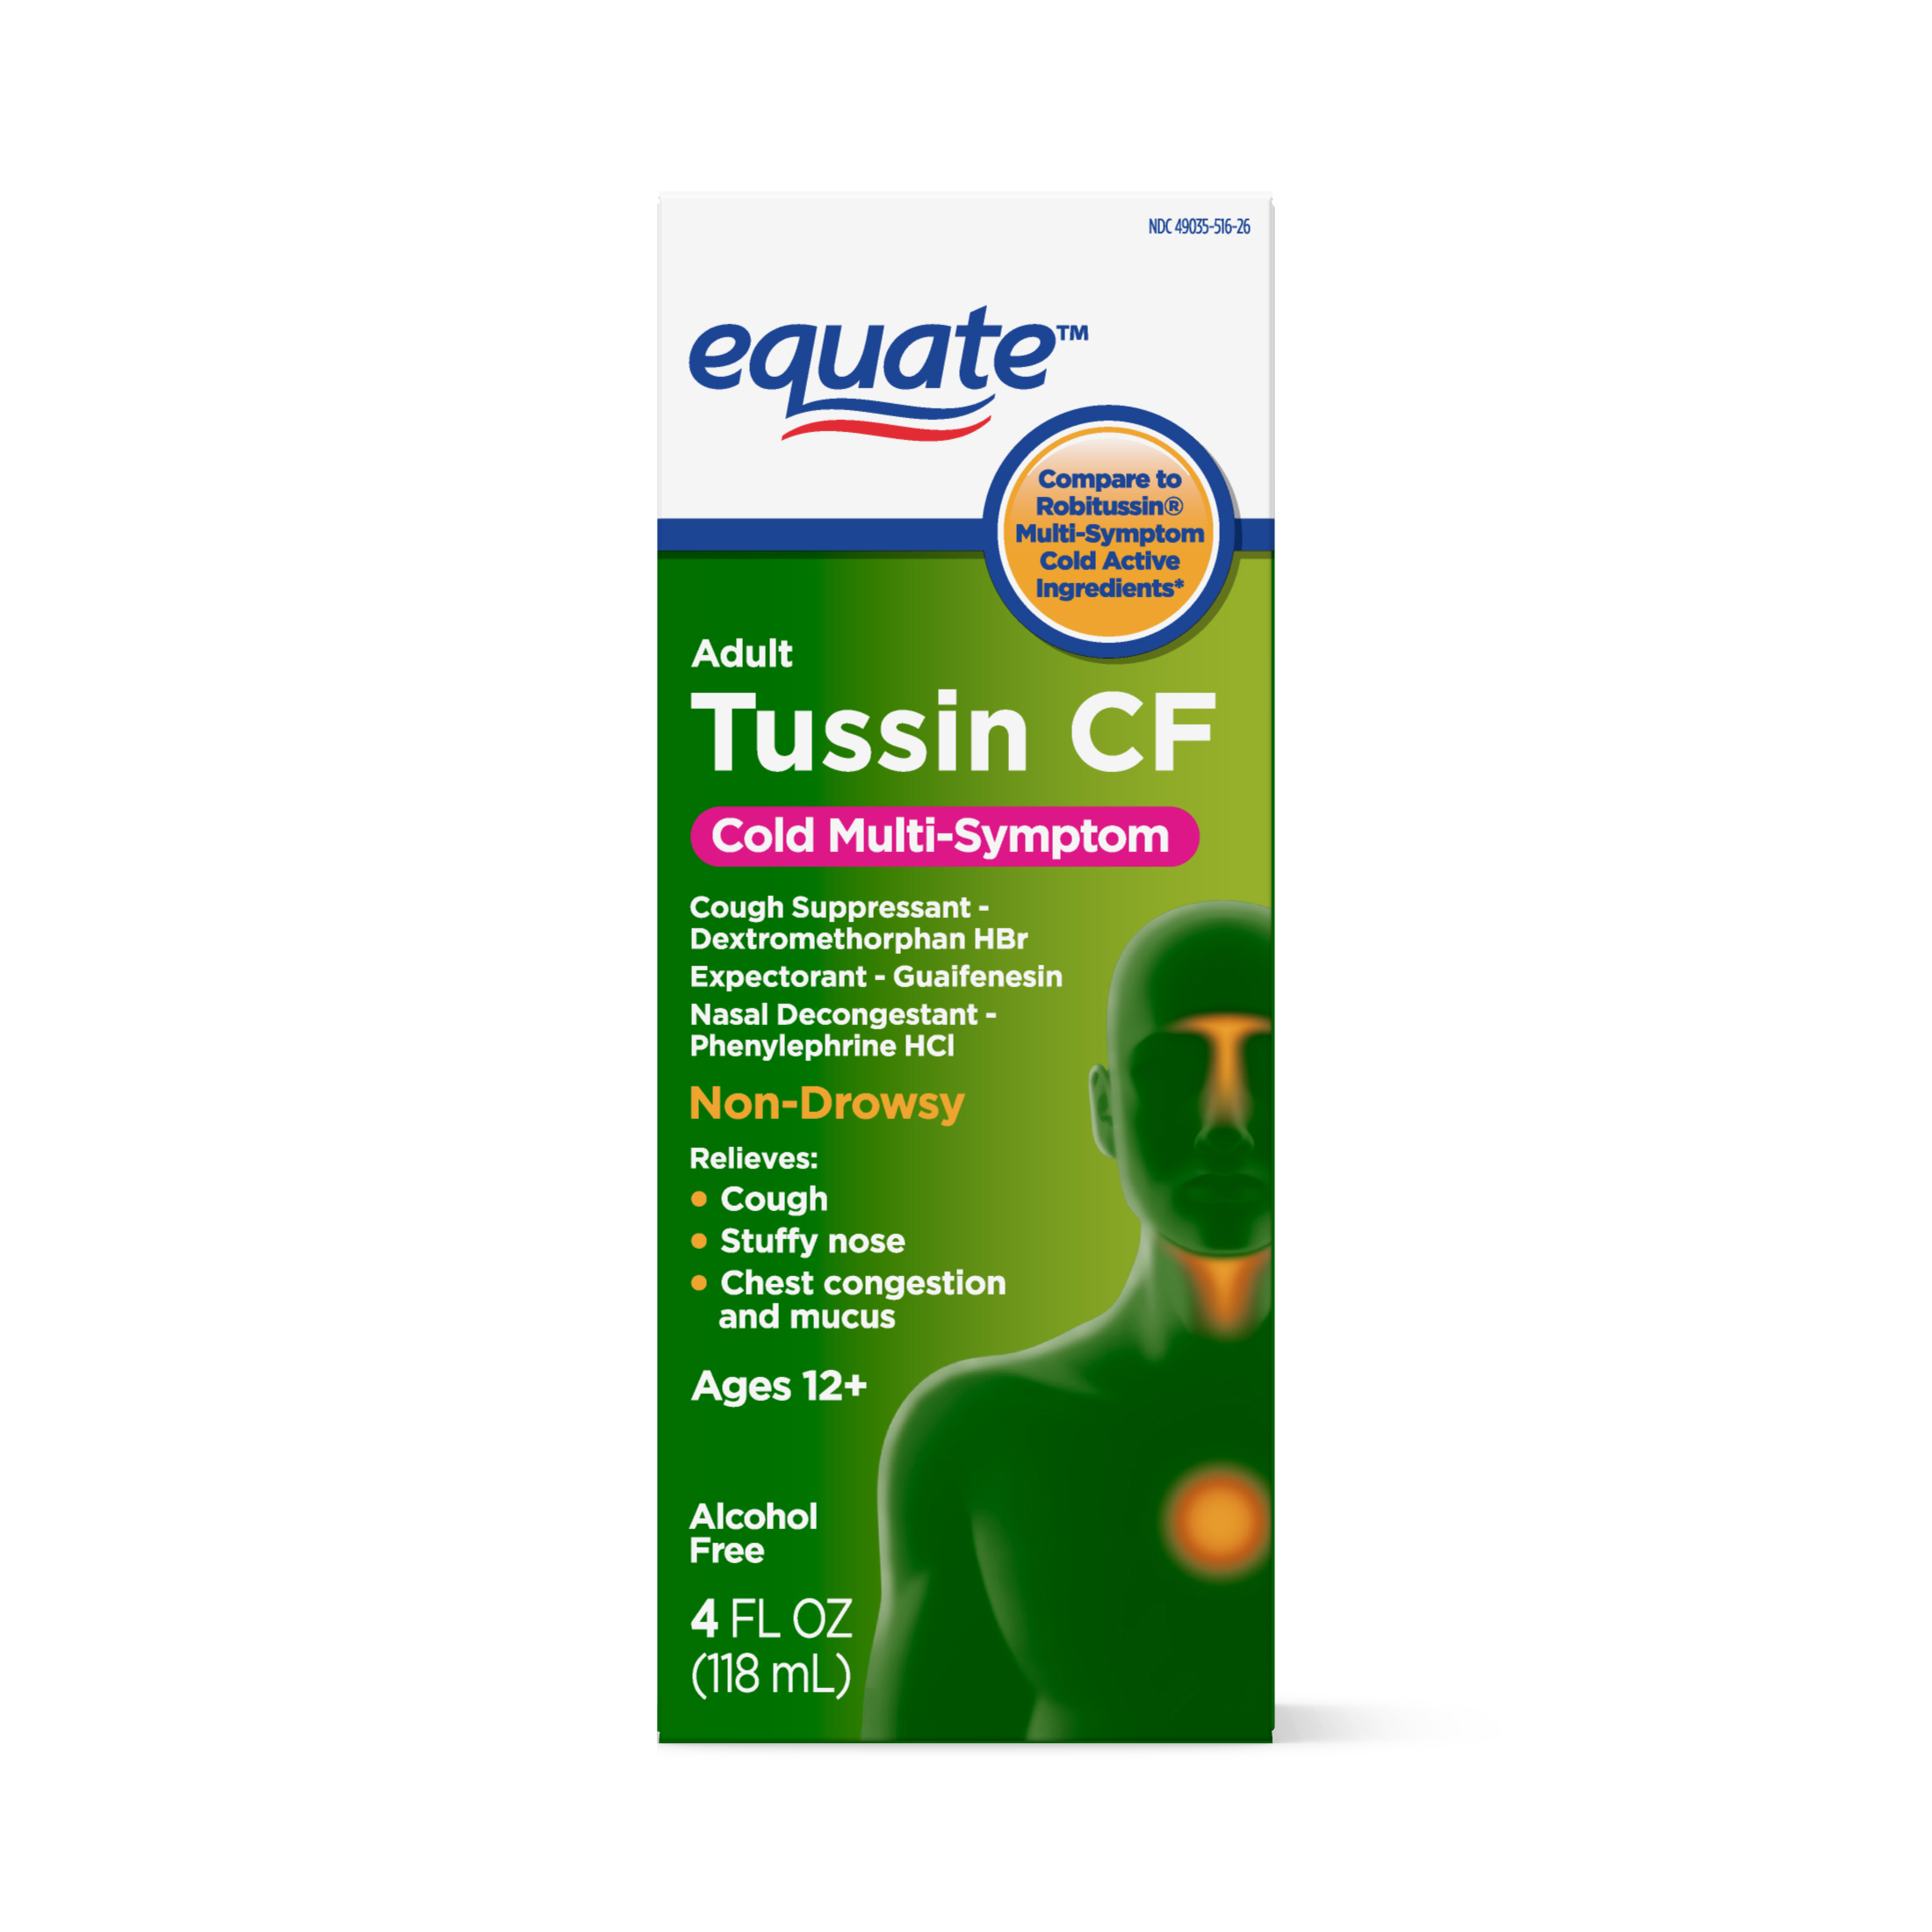 Equate Tussin CF, Cold Multi-Symptom, 4 fluid ounces